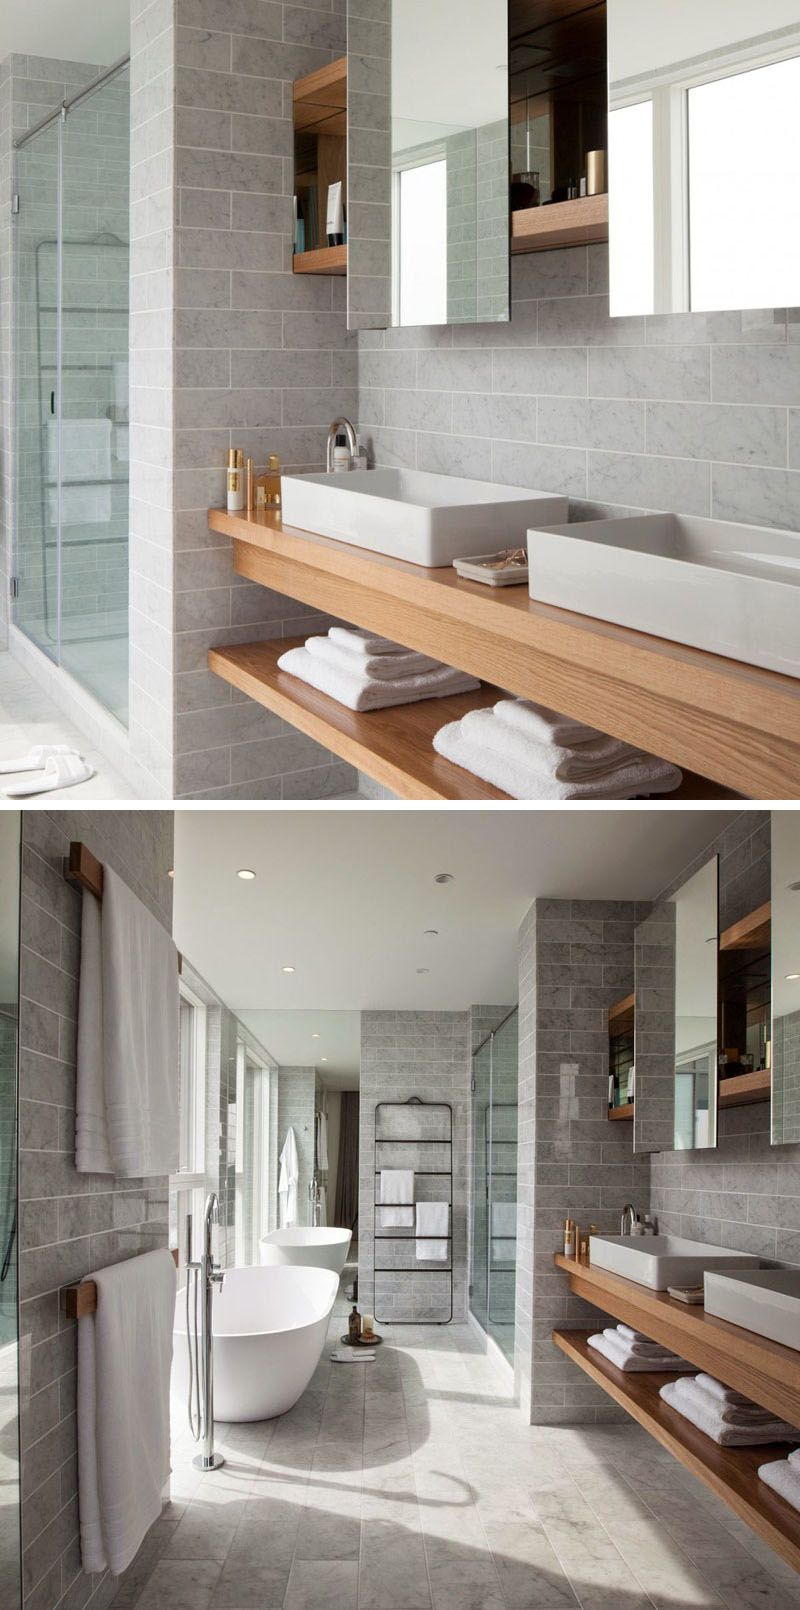 15 Examples Of Bathroom Vanities That Have Open Shelving This Vanity Features Multiple Sinks And A Second Floatin Floating Bathroom Vanities Open Bathroom Bathroom Sink Vanity